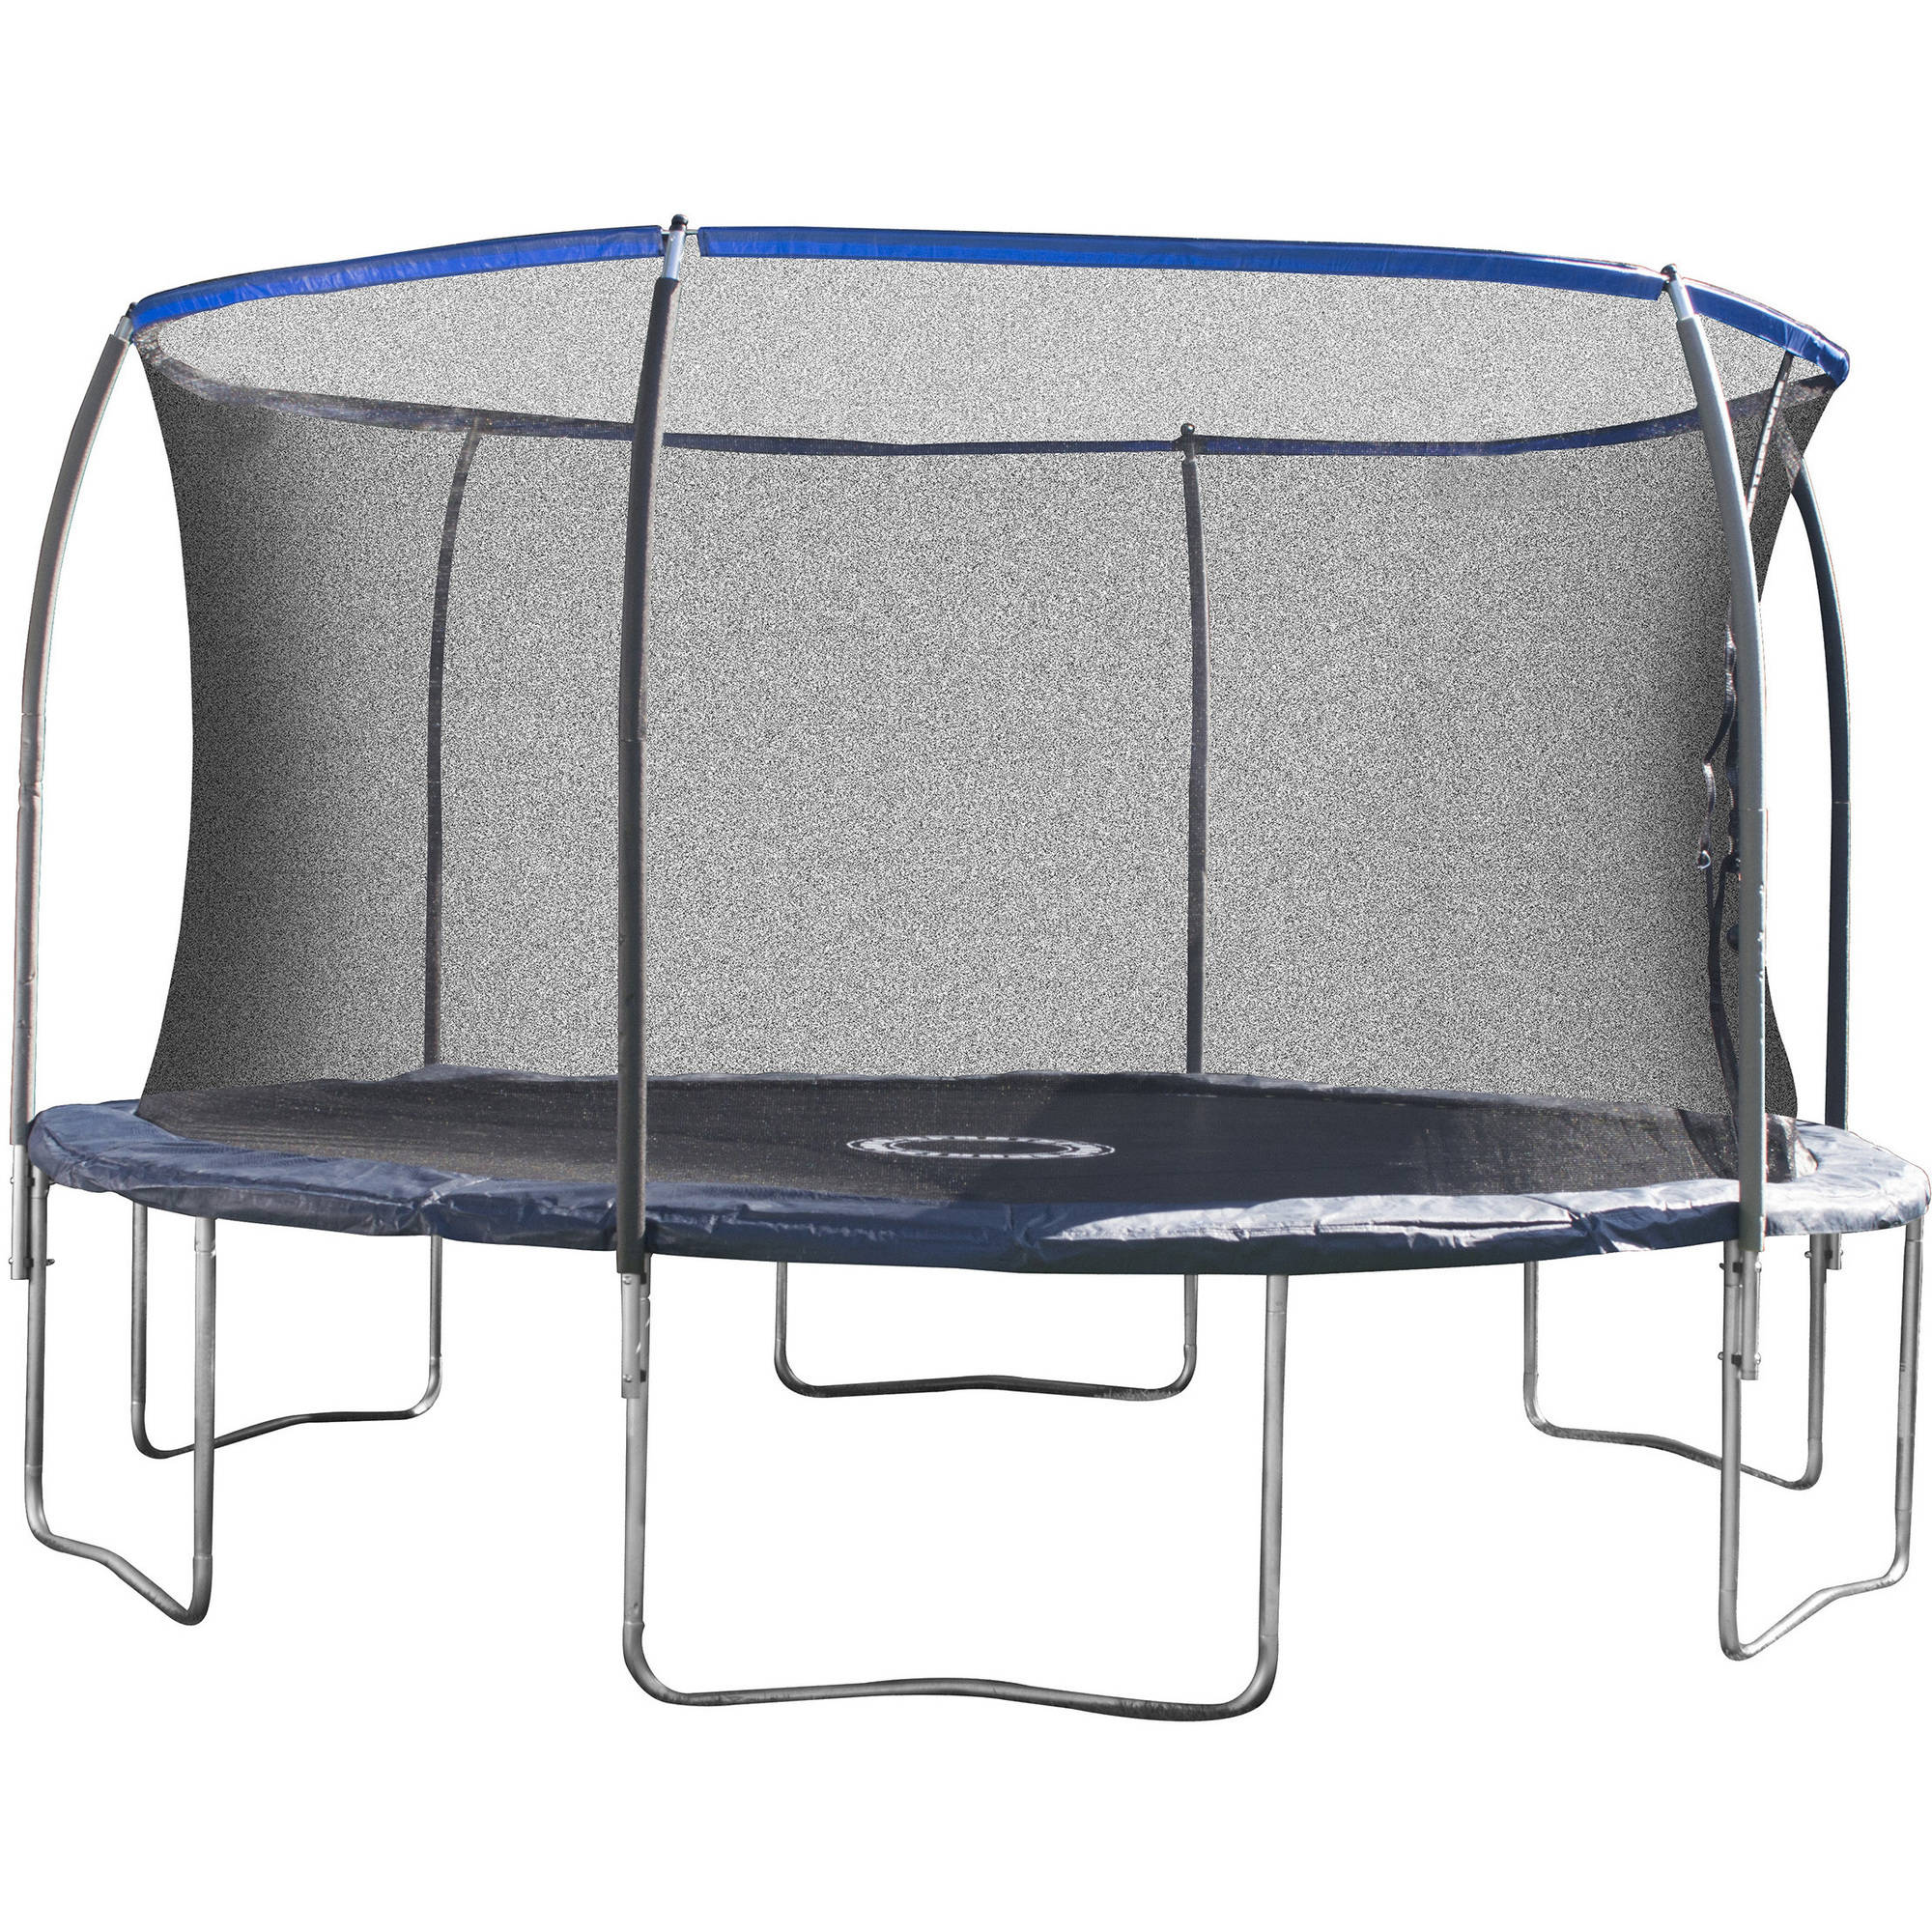 Bounce Pro 14-Foot Trampoline, with Enclosure, Dark Blue